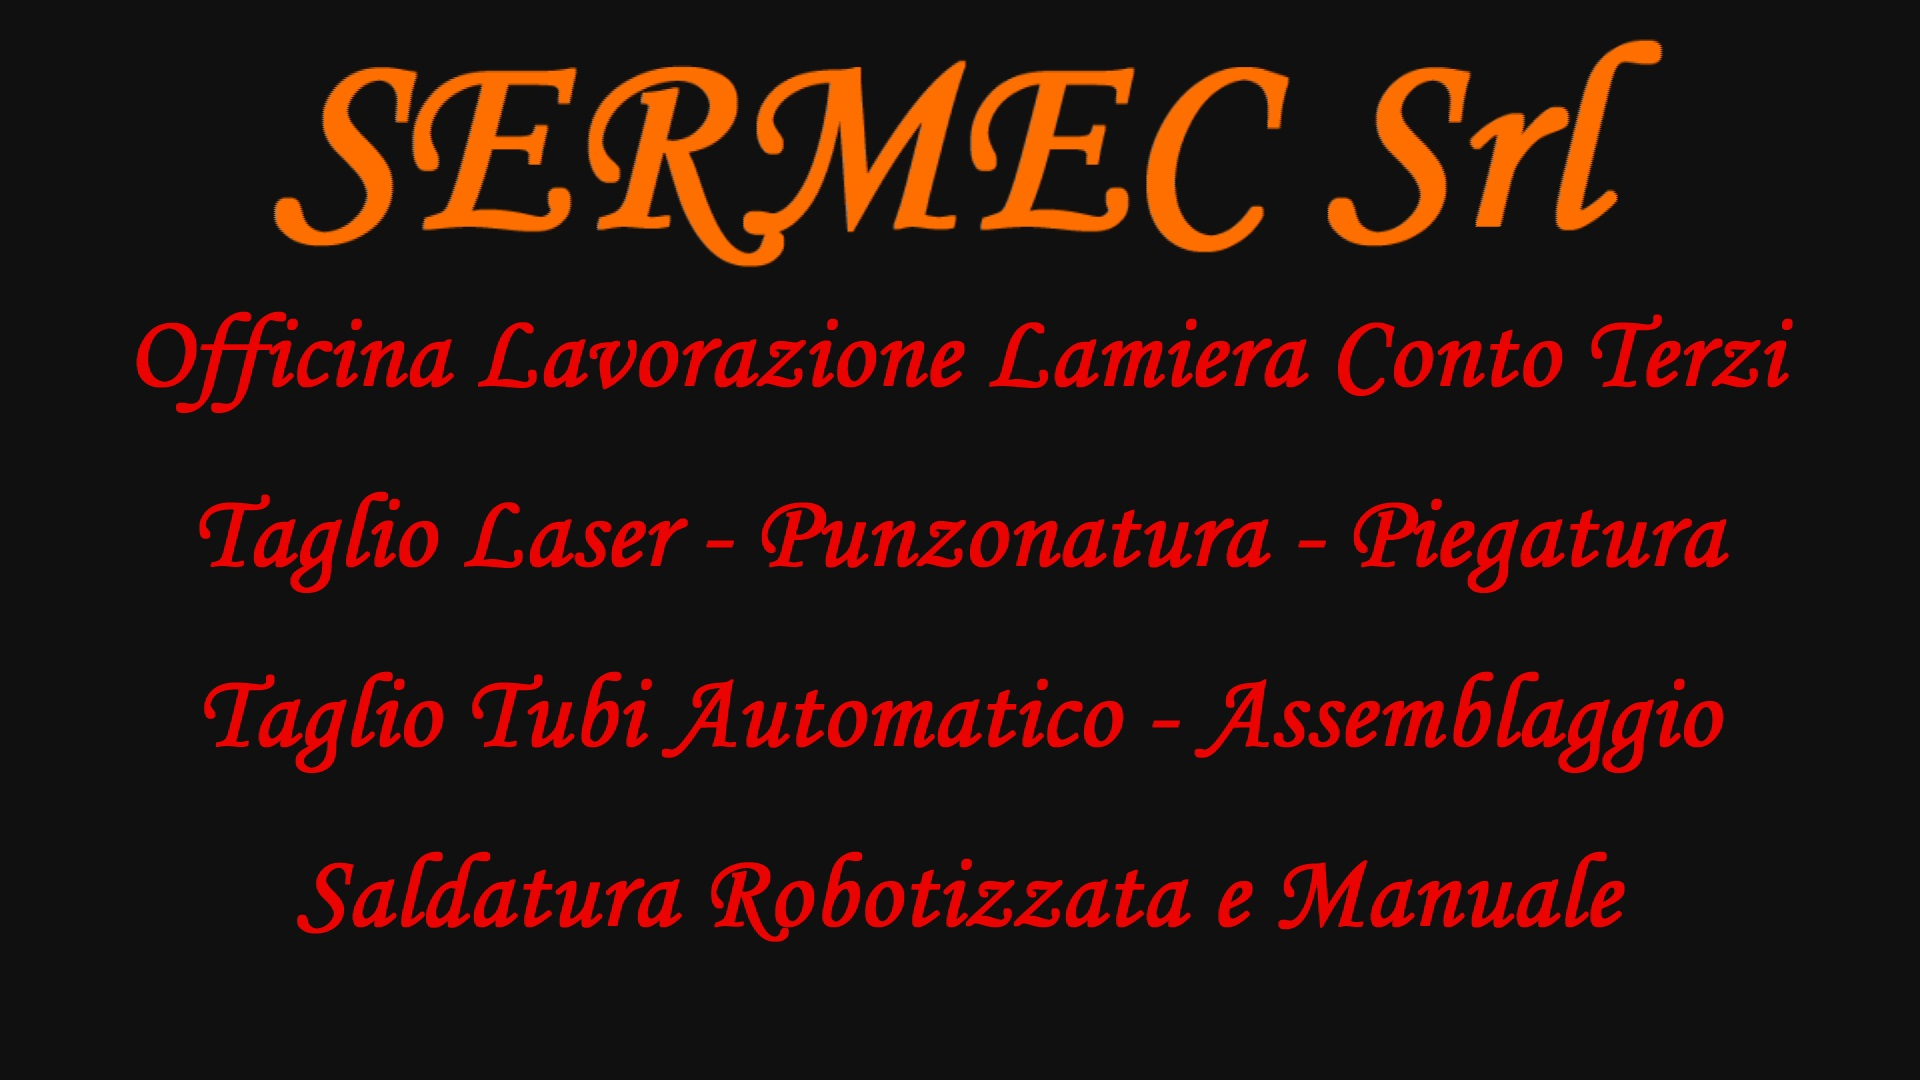 SERMEC-PER-SPONSOR-ASD-BREAK-MC-2